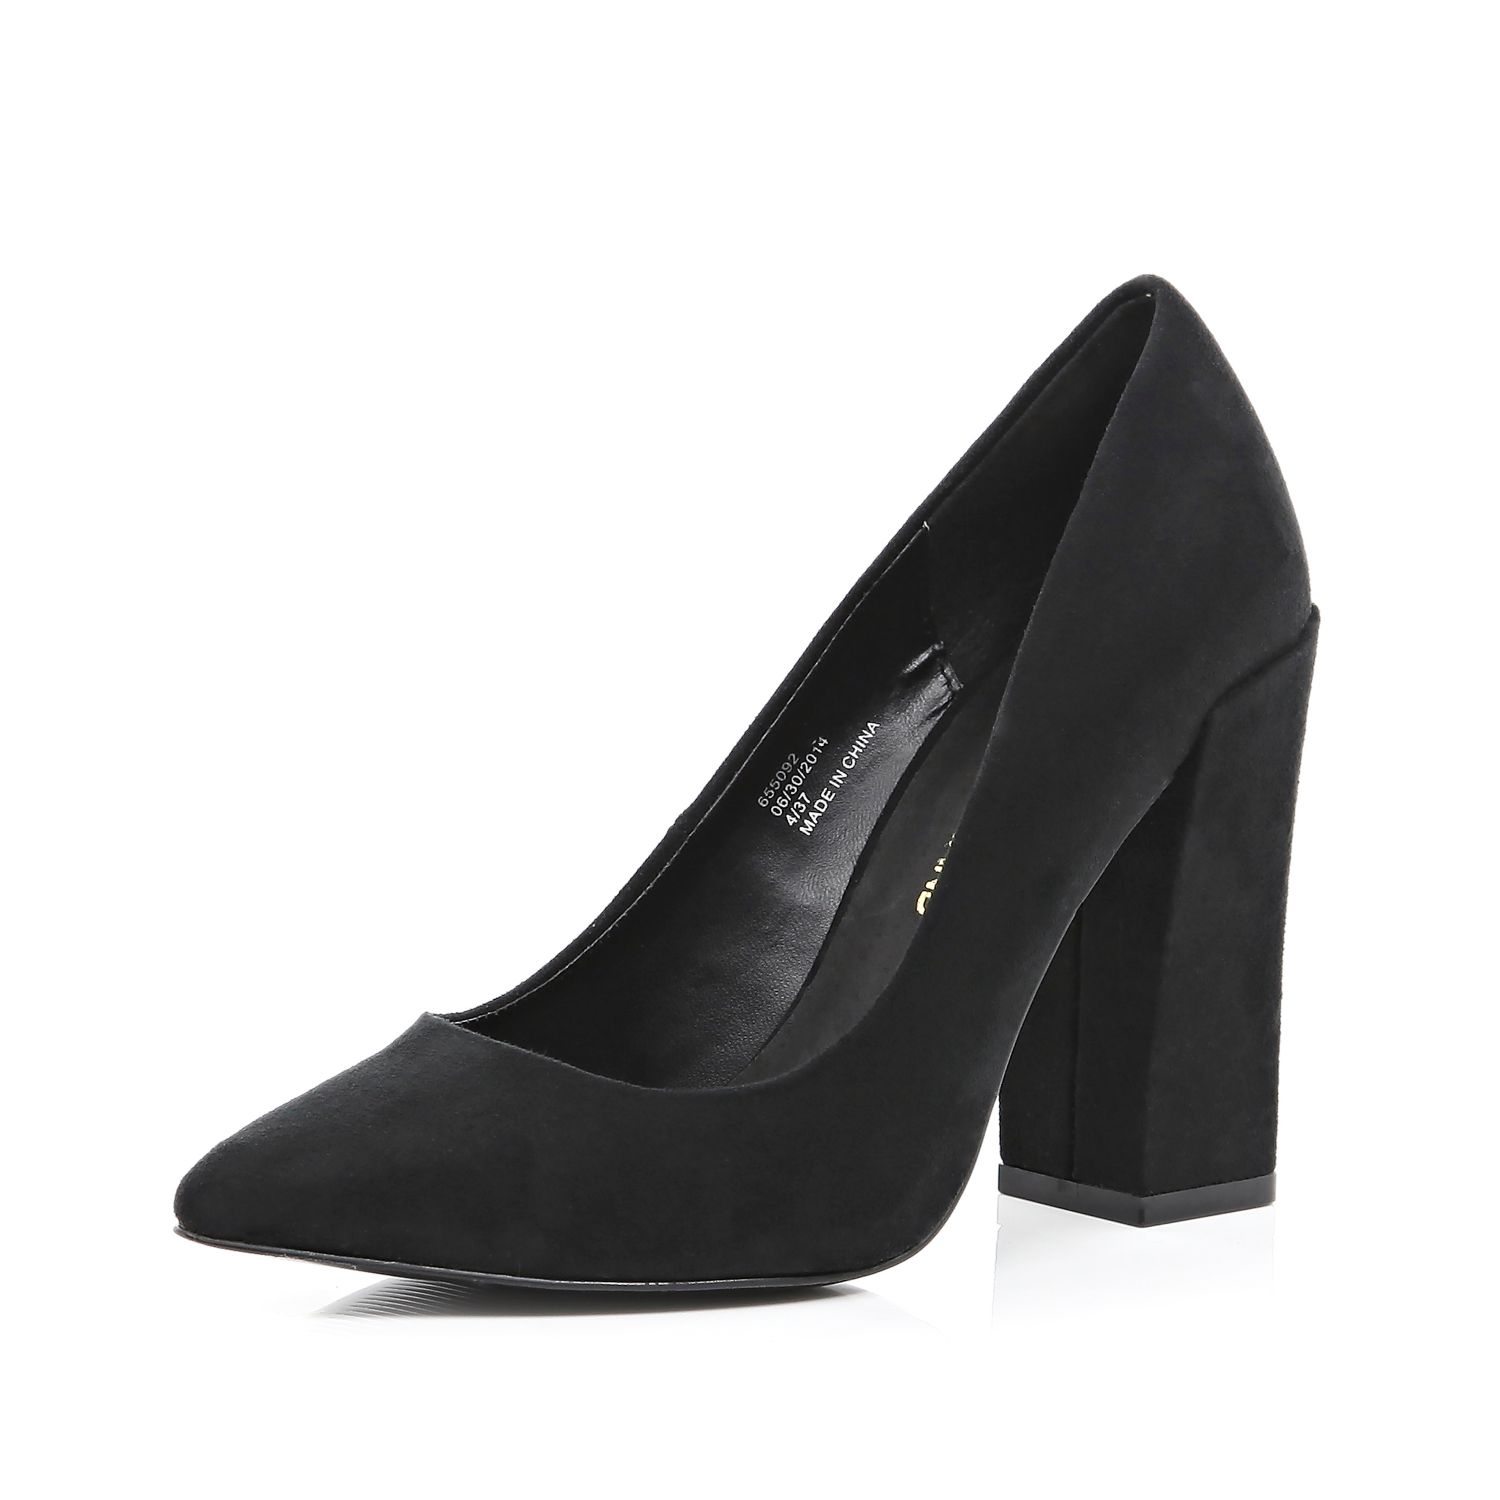 4c0ddce955e5 River Island Black Angular Block Heel Court Shoes In Lyst